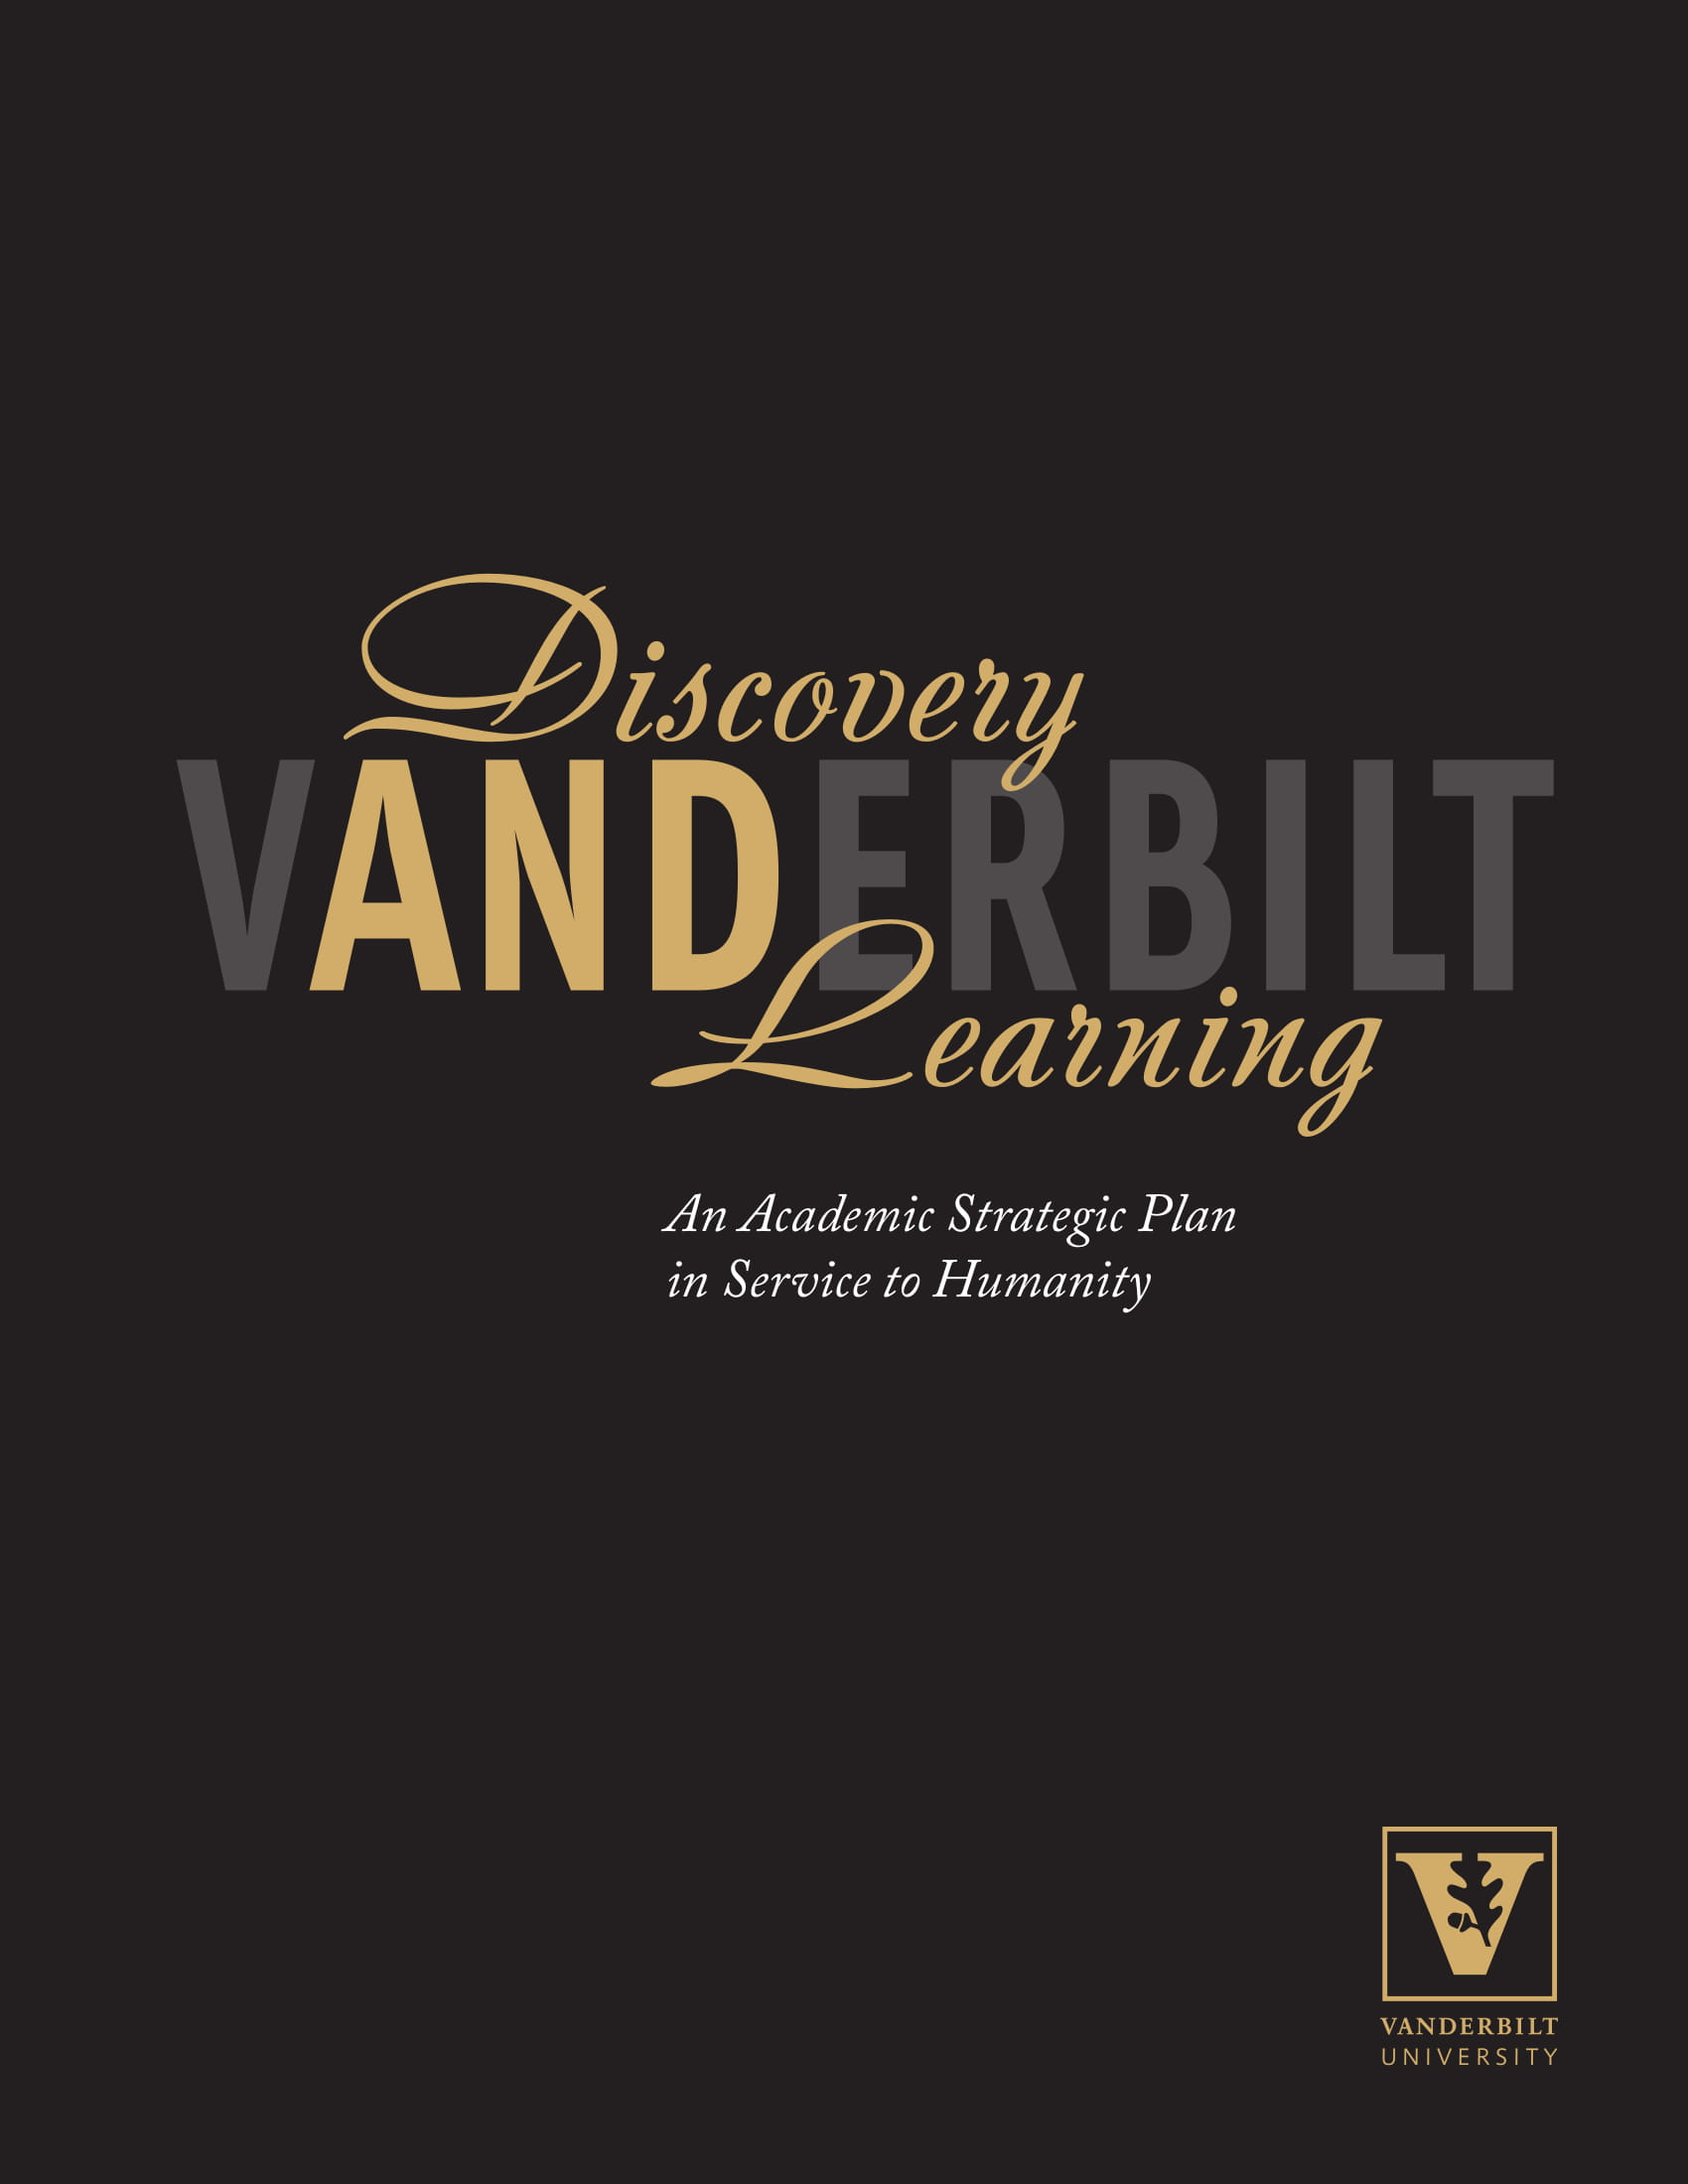 academic strategic plan for vanderbilt university